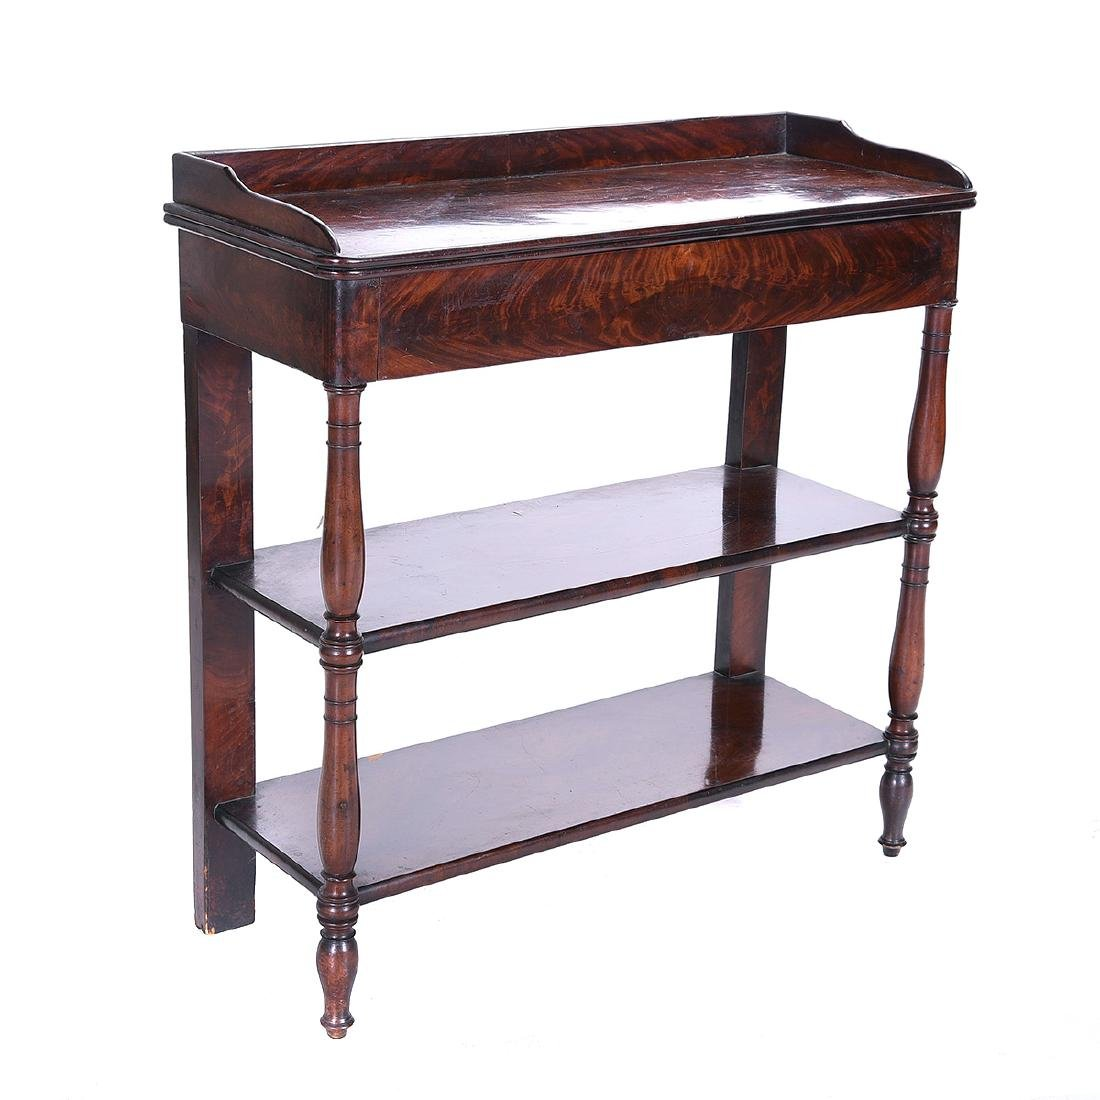 Late William IV Mahogany Two Tier Etagere Table - 2